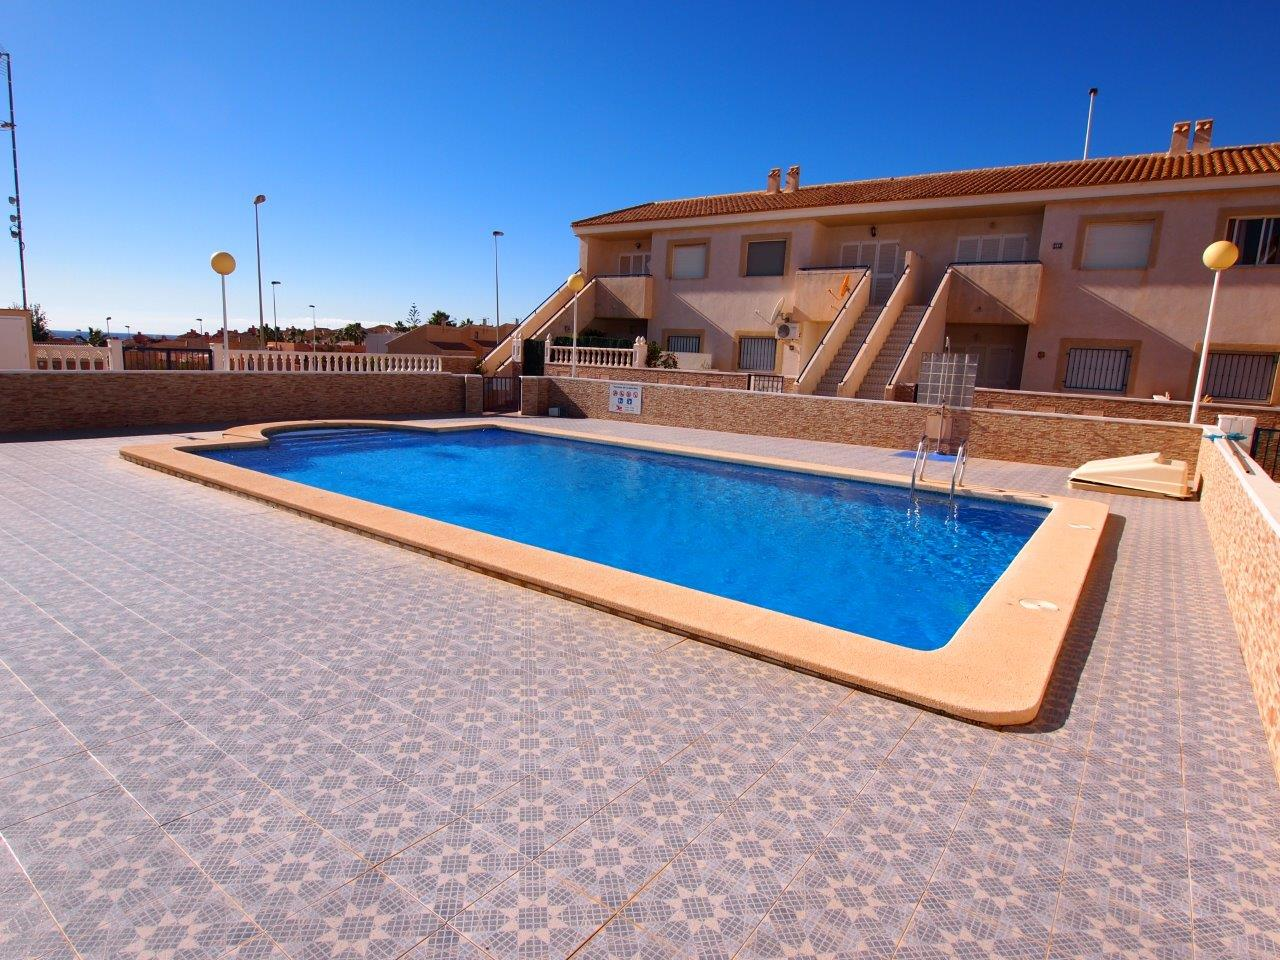 274. 2BED FABULOUS APARTMENT WITH 2 LARGE TERRACES - Swimming Pool ...